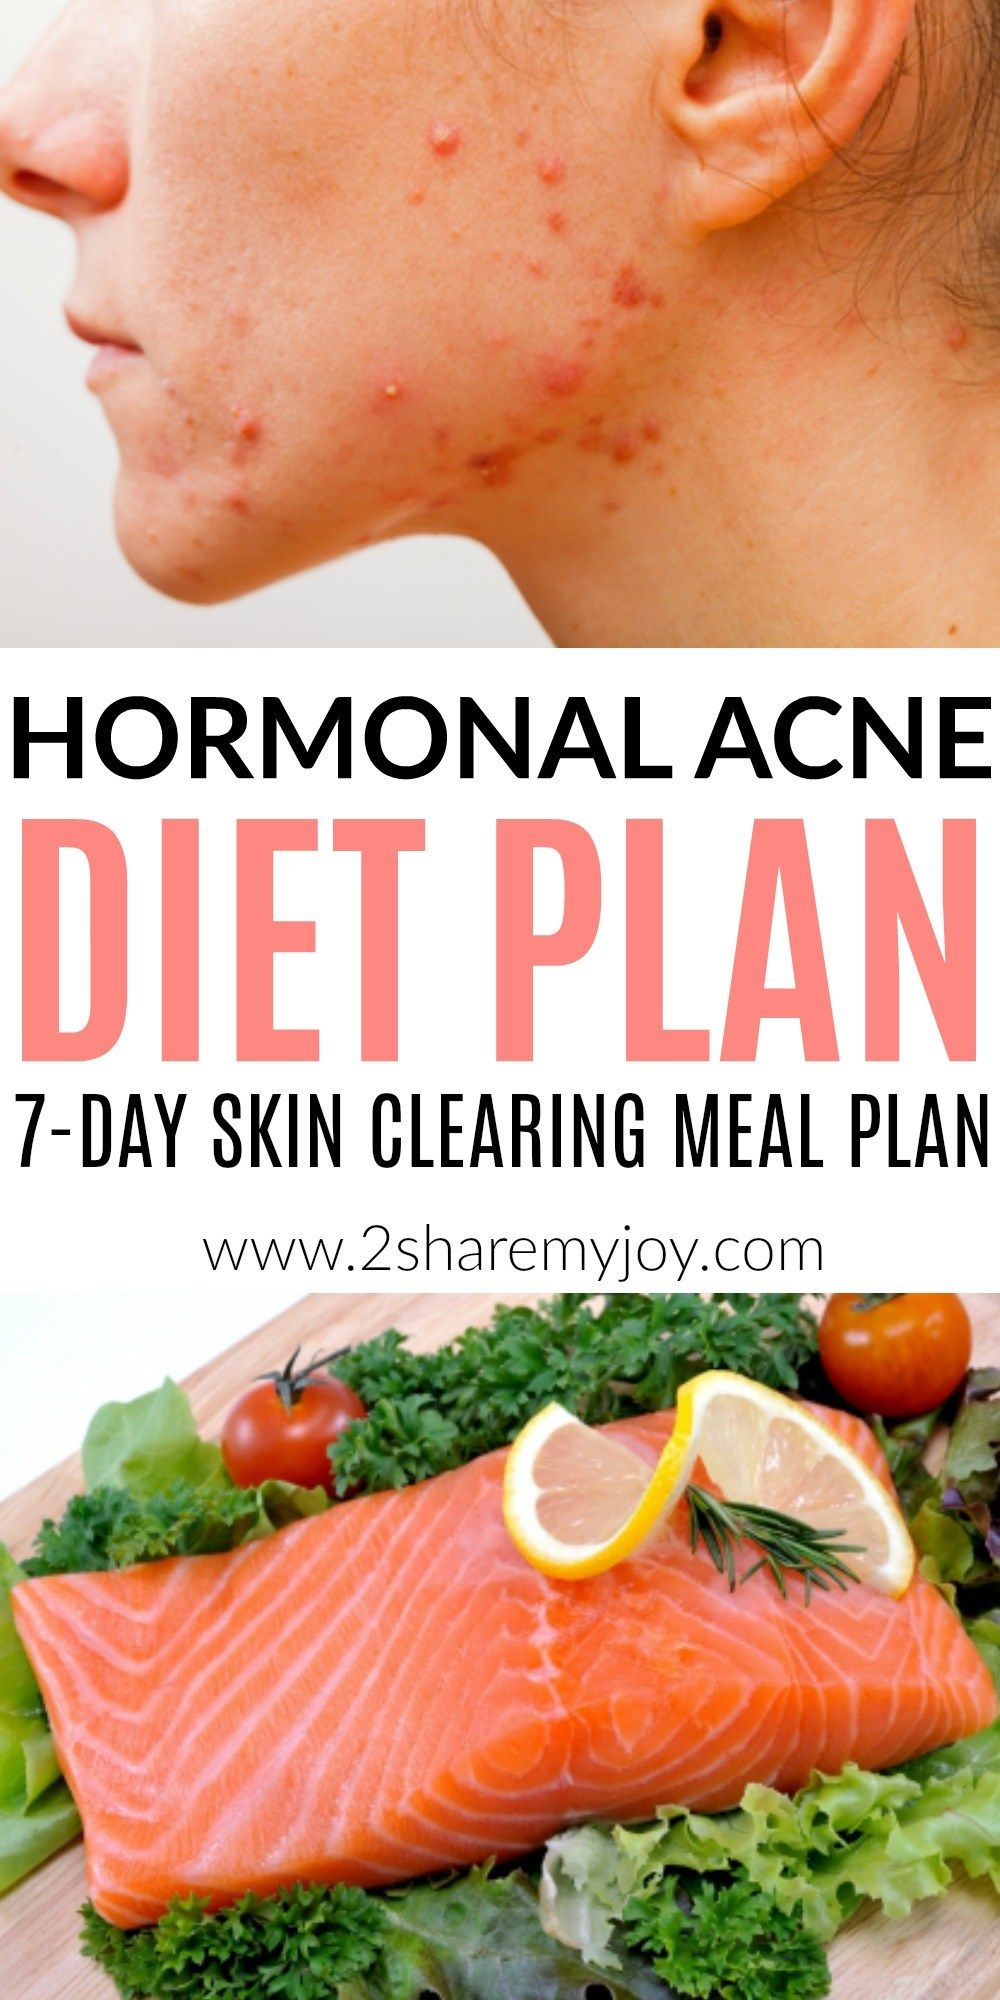 diet plan for acne sufferers